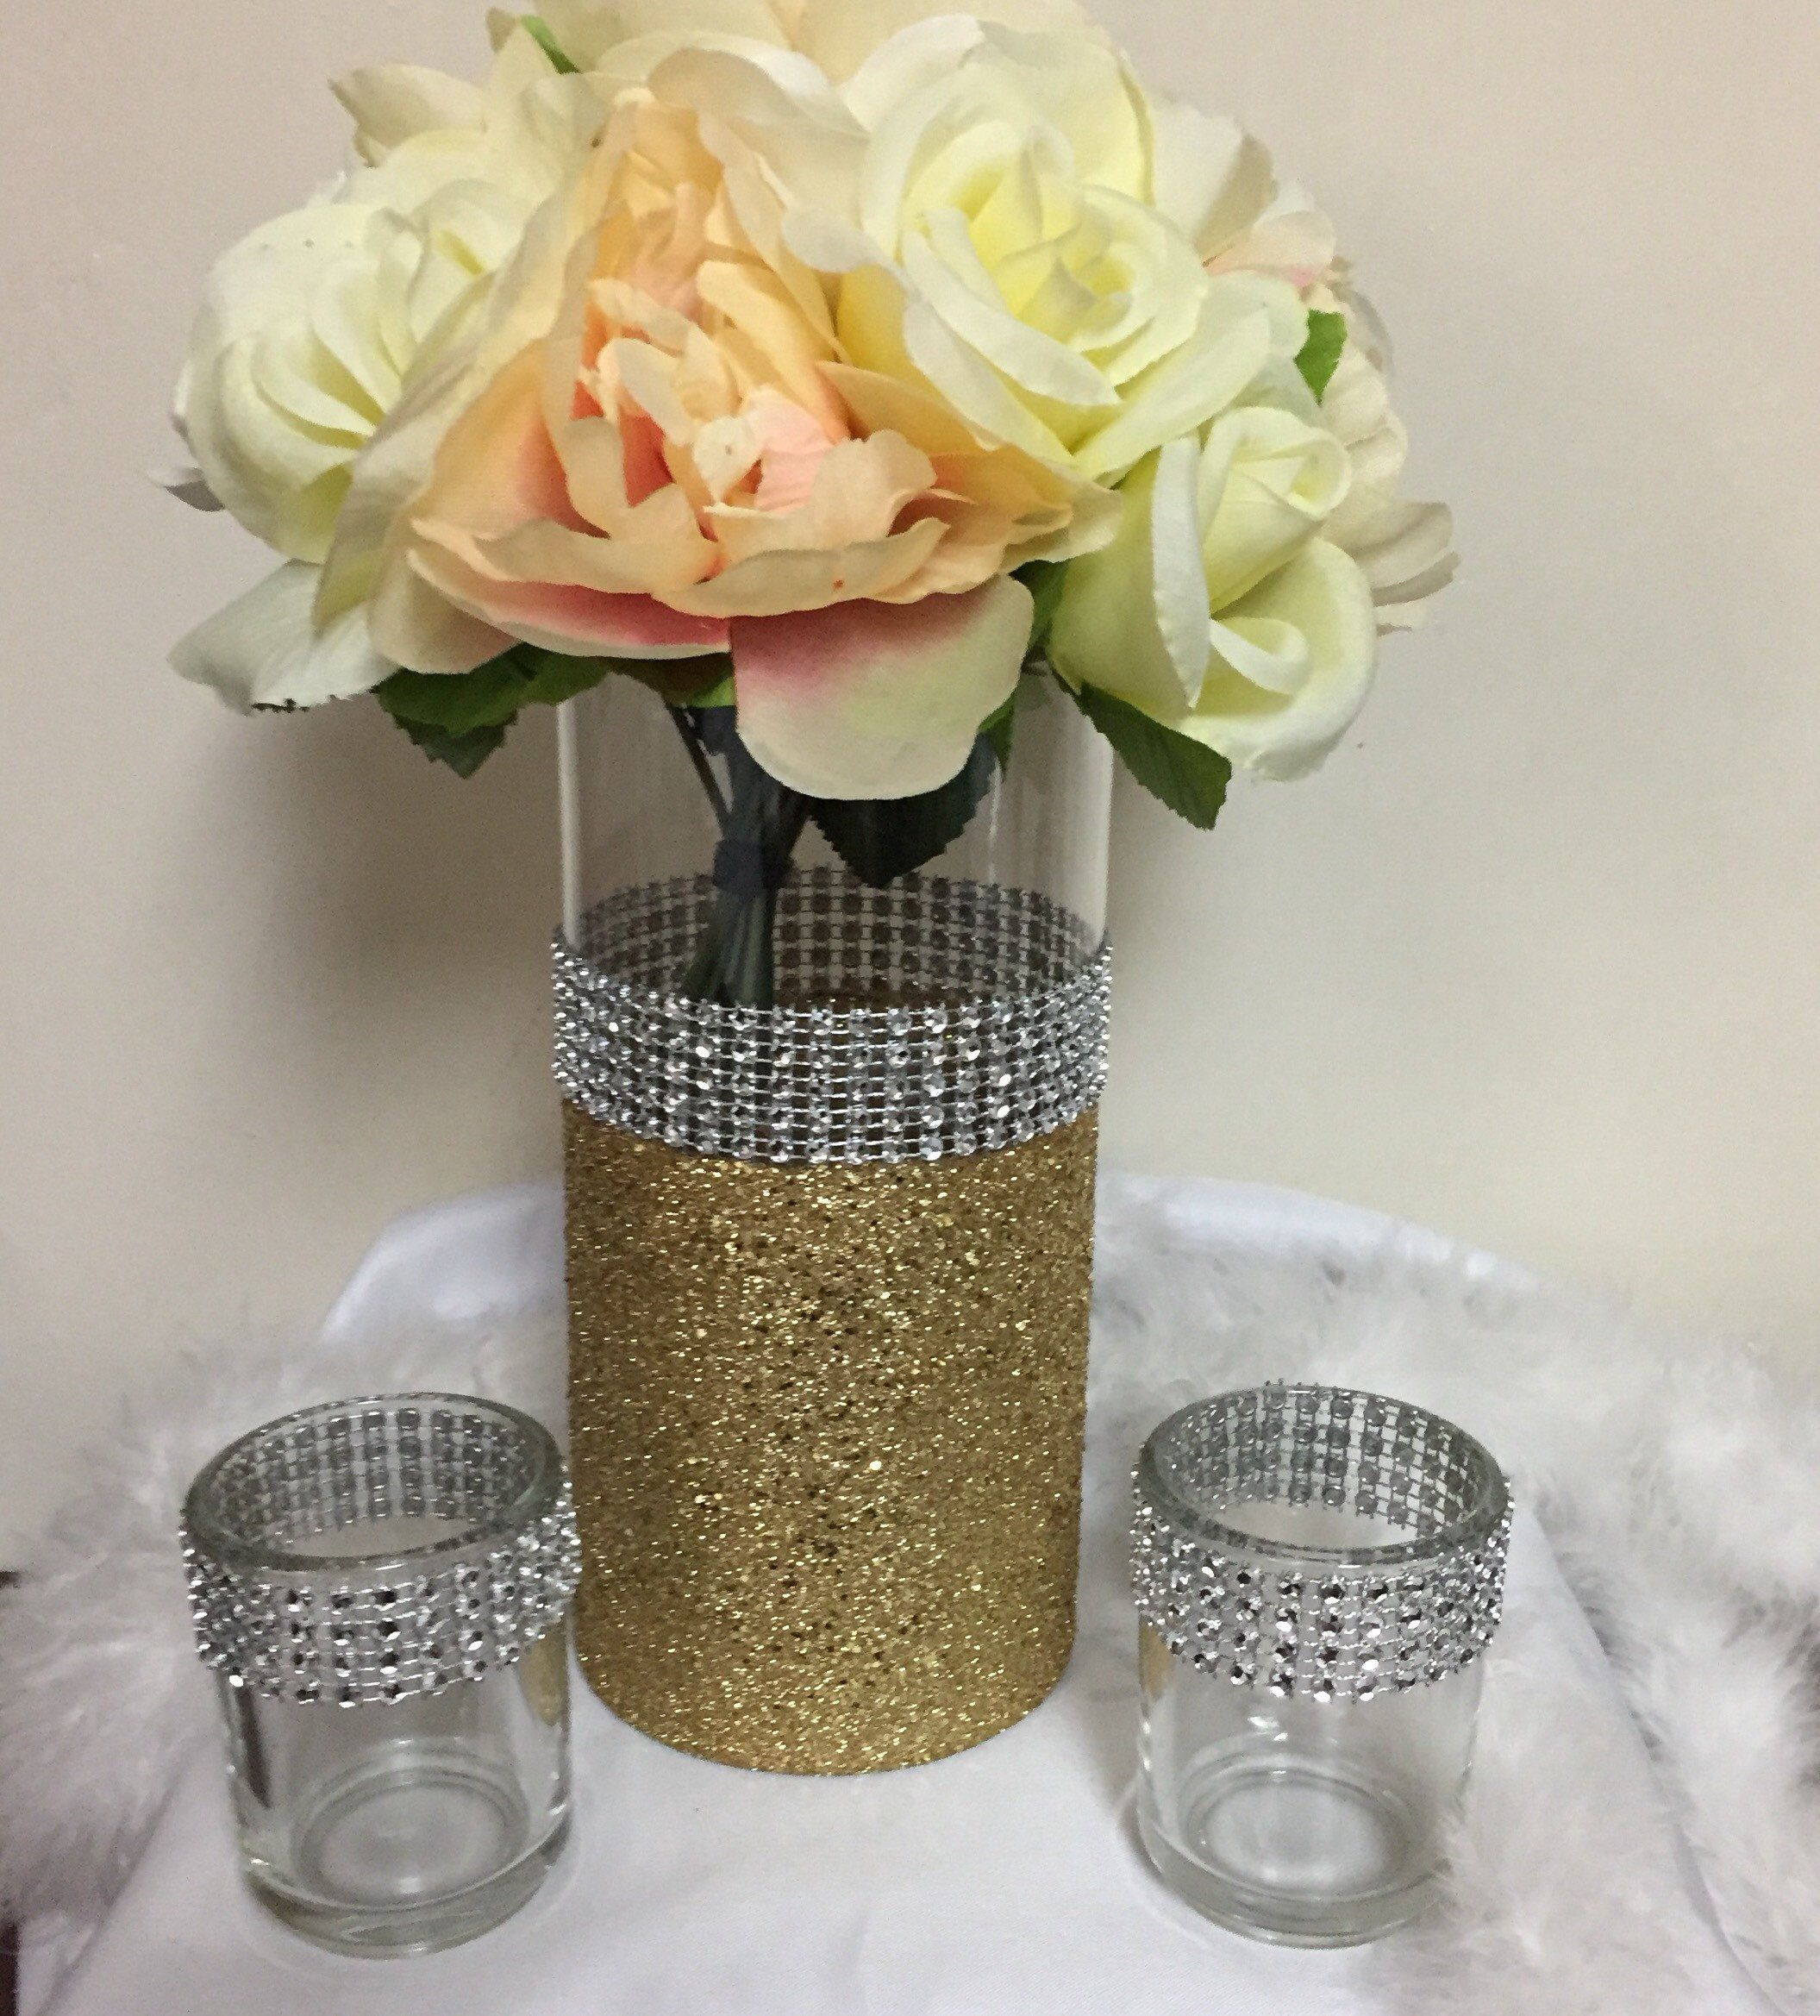 wedding centerpiece rhinestone vase 1 vase bridal bouquet rh pinterest com